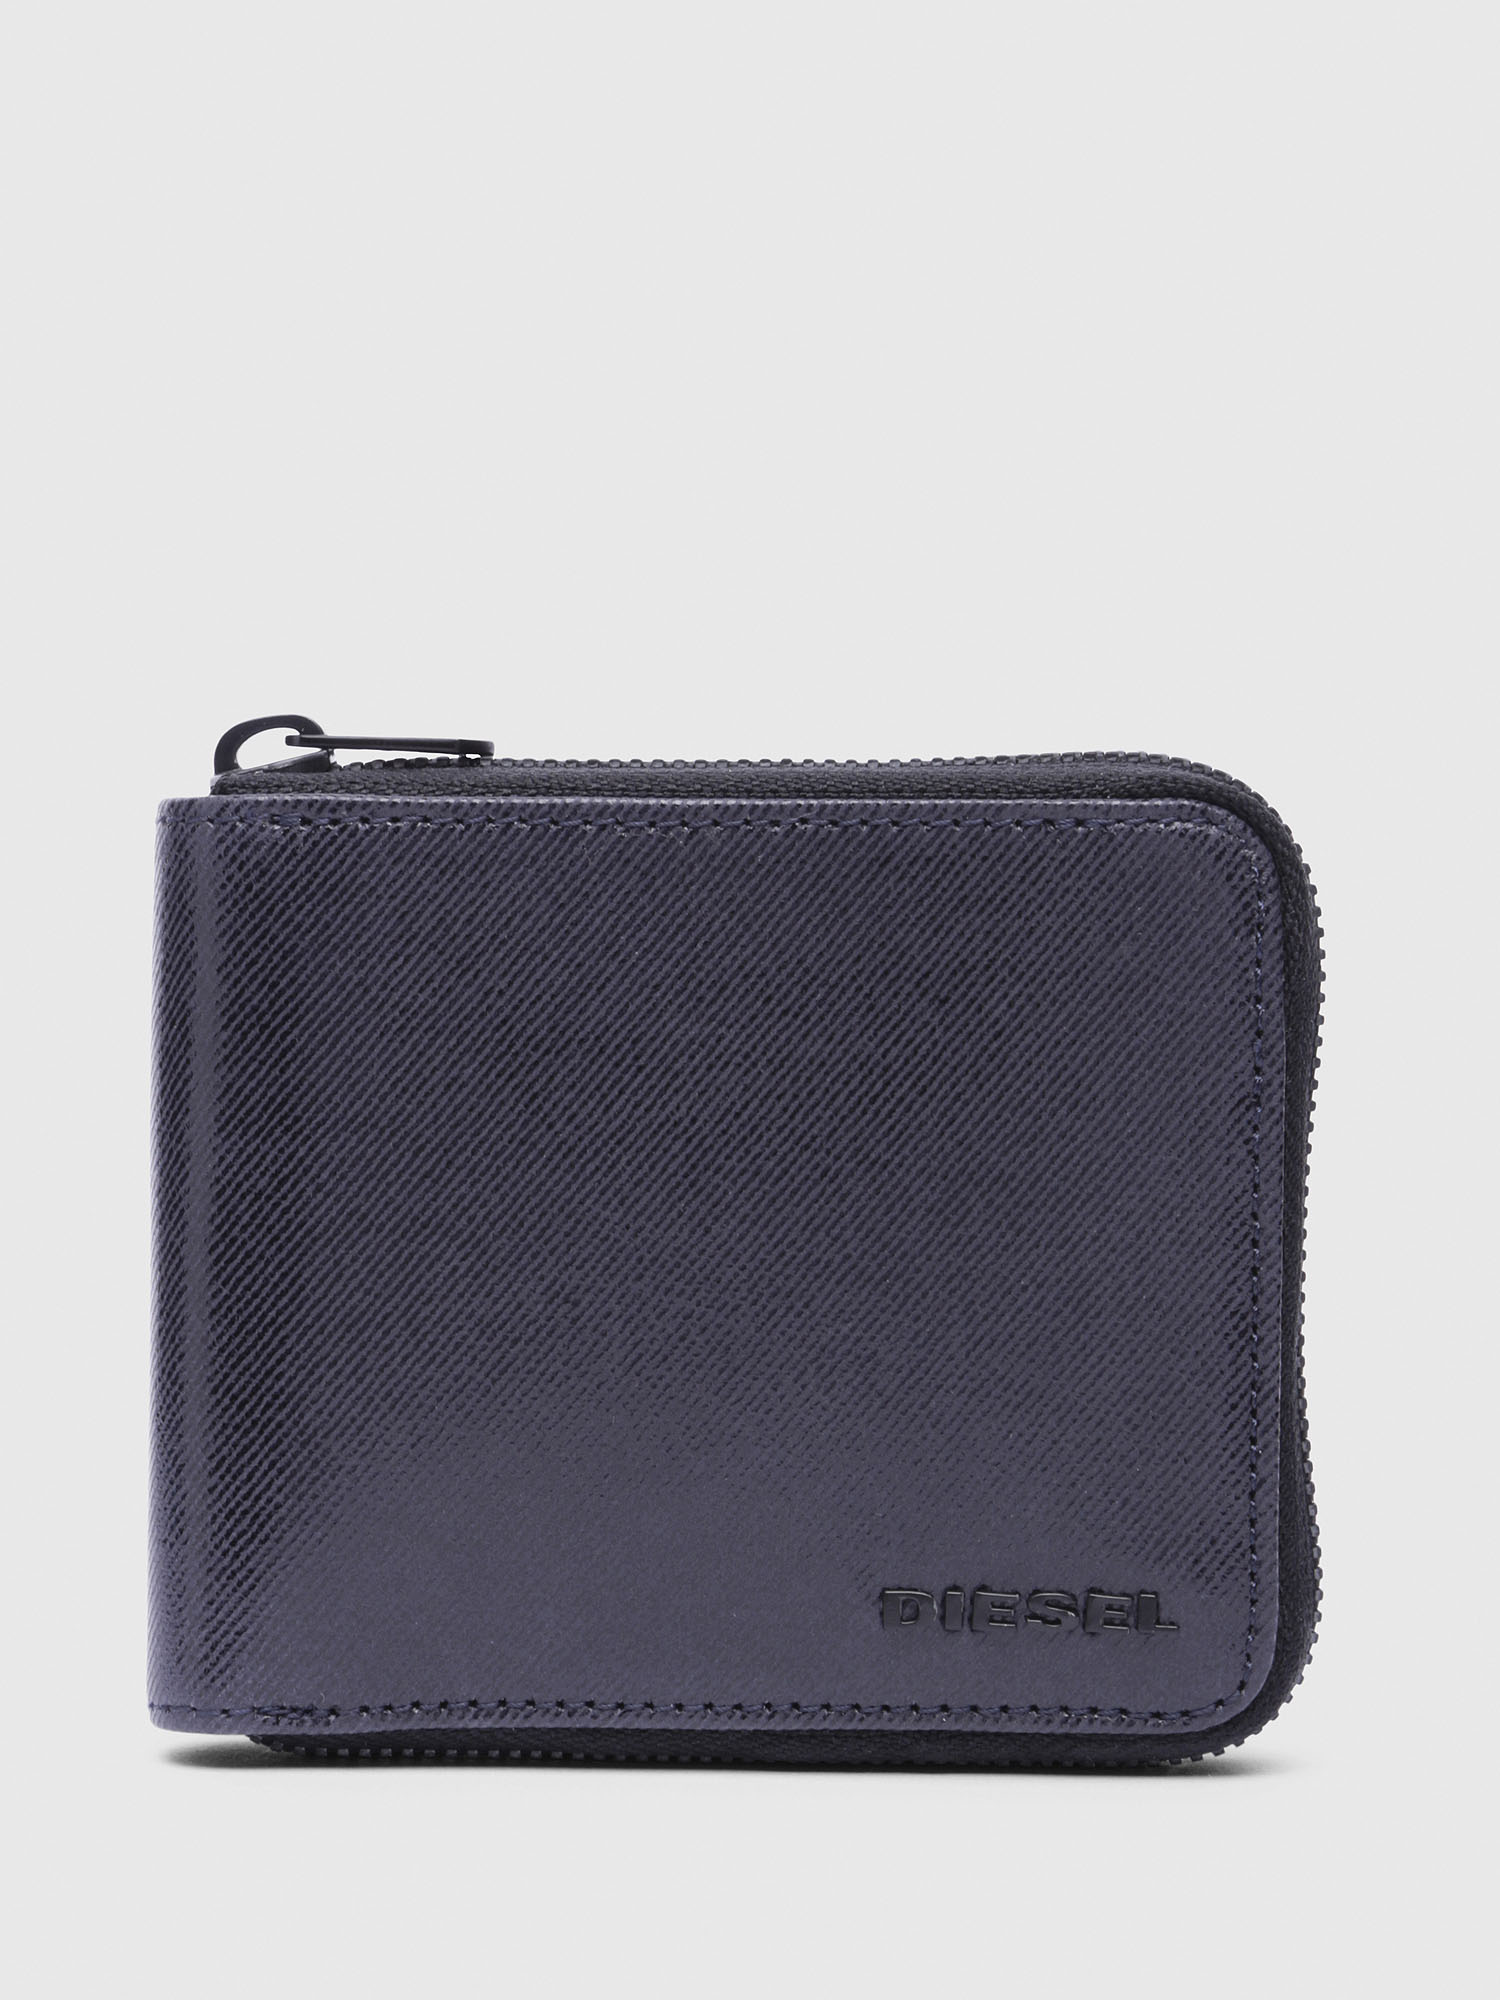 Diesel - ZIPPY HIRESH S WITH,  - Zip-Round Wallets - Image 1